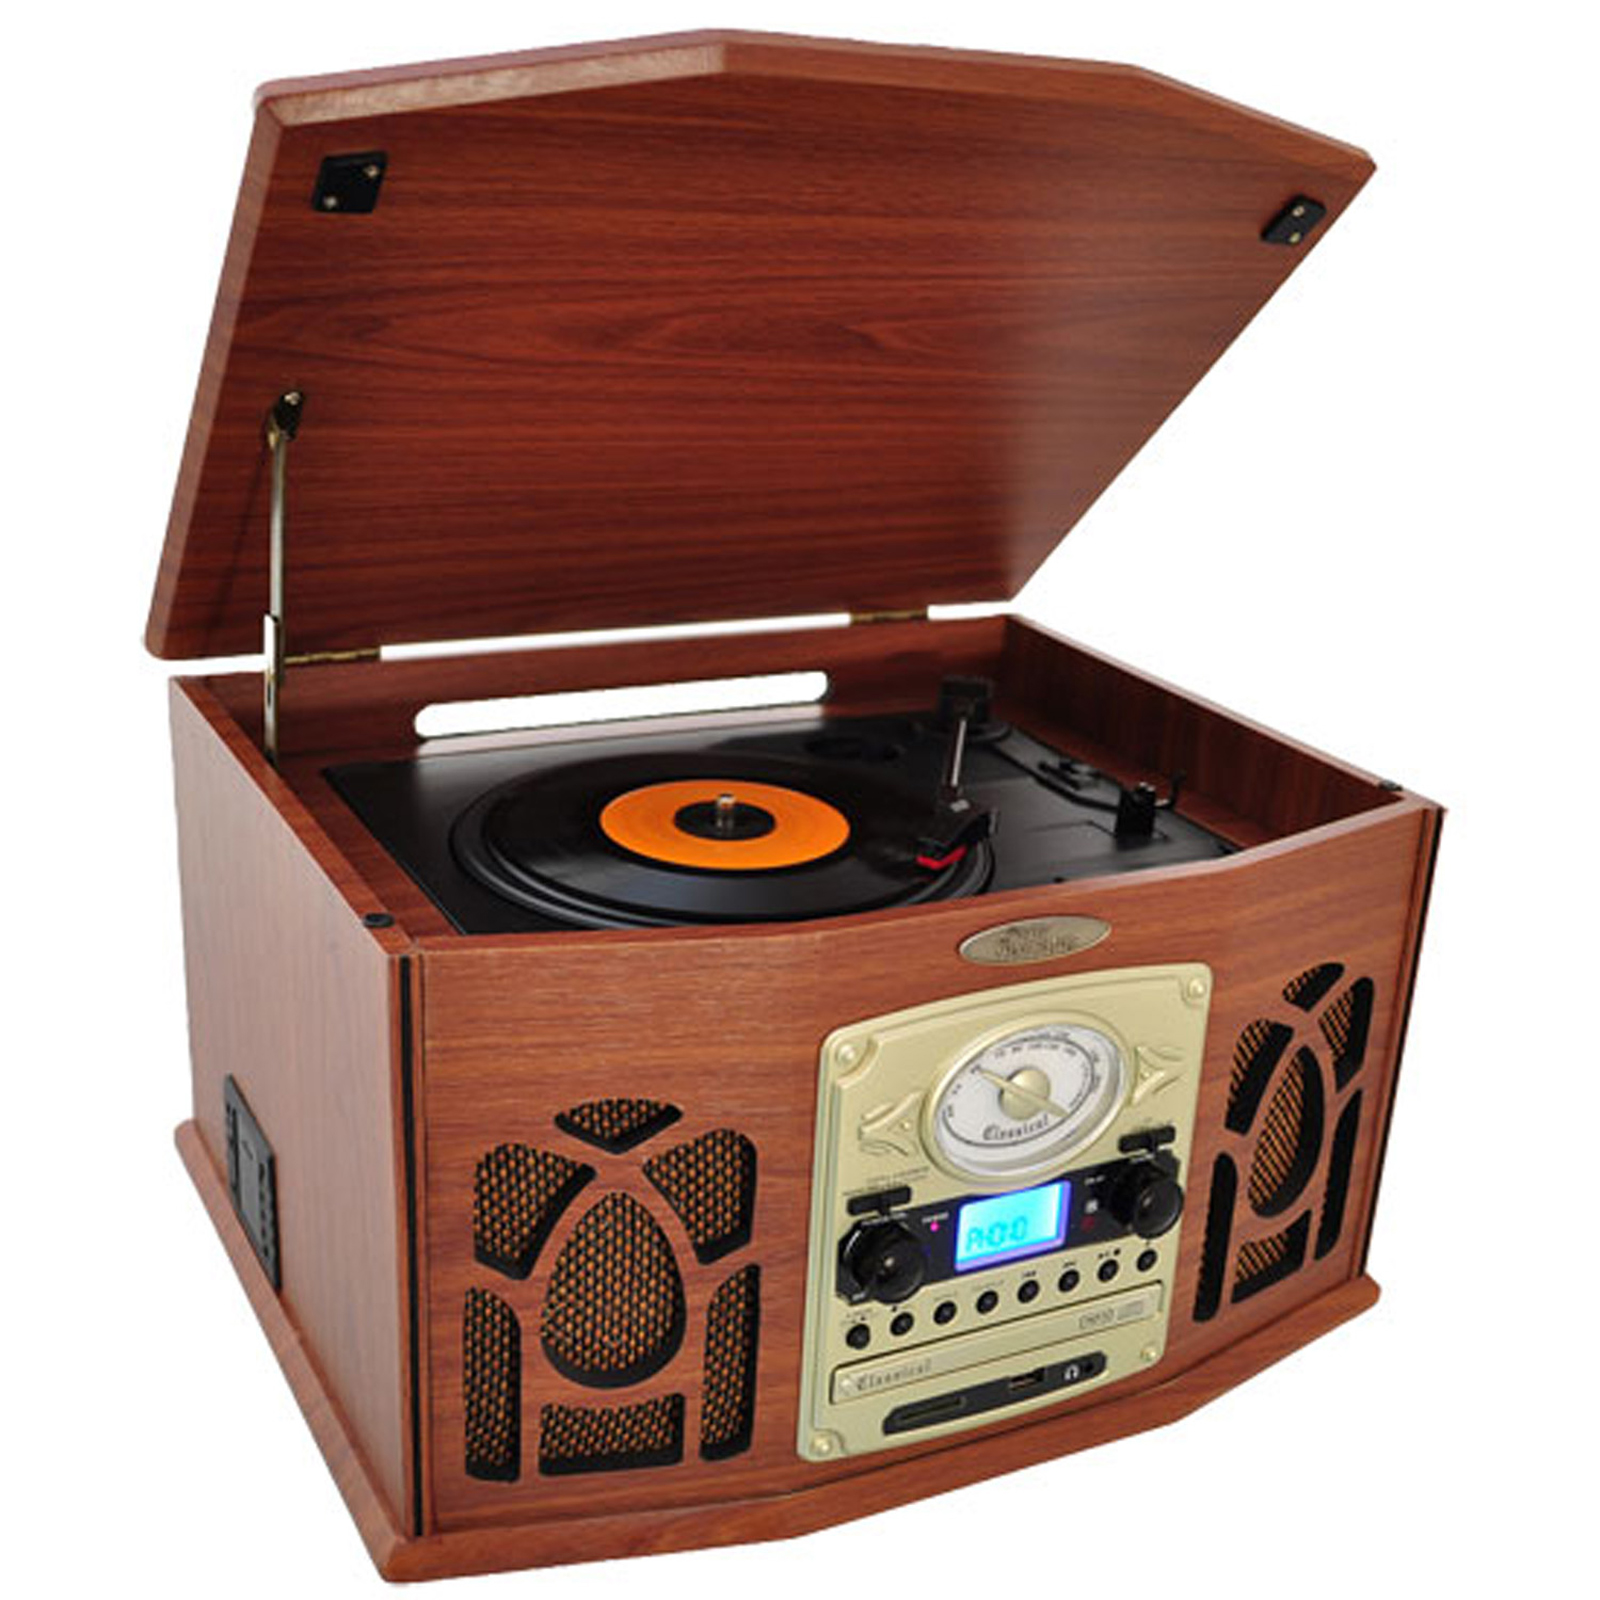 Pyle PTCDS7UIW Vintage Classic-Style Turntable System with Built-in Speakers, AM FM Radio, CD & Cassette... by Pyle